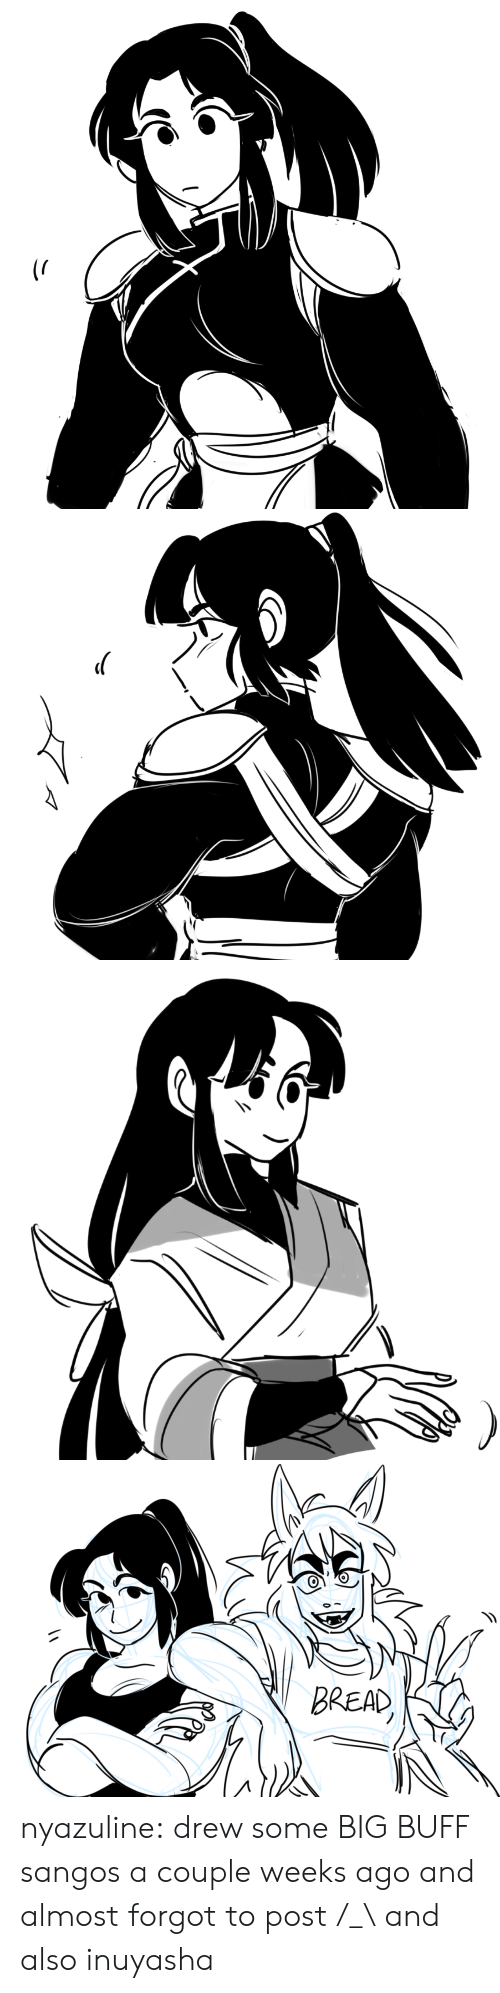 Target, Tumblr, and Blog: BREAD nyazuline: drew some BIG BUFF sangos a couple weeks ago and almost forgot to post /_\  and also inuyasha